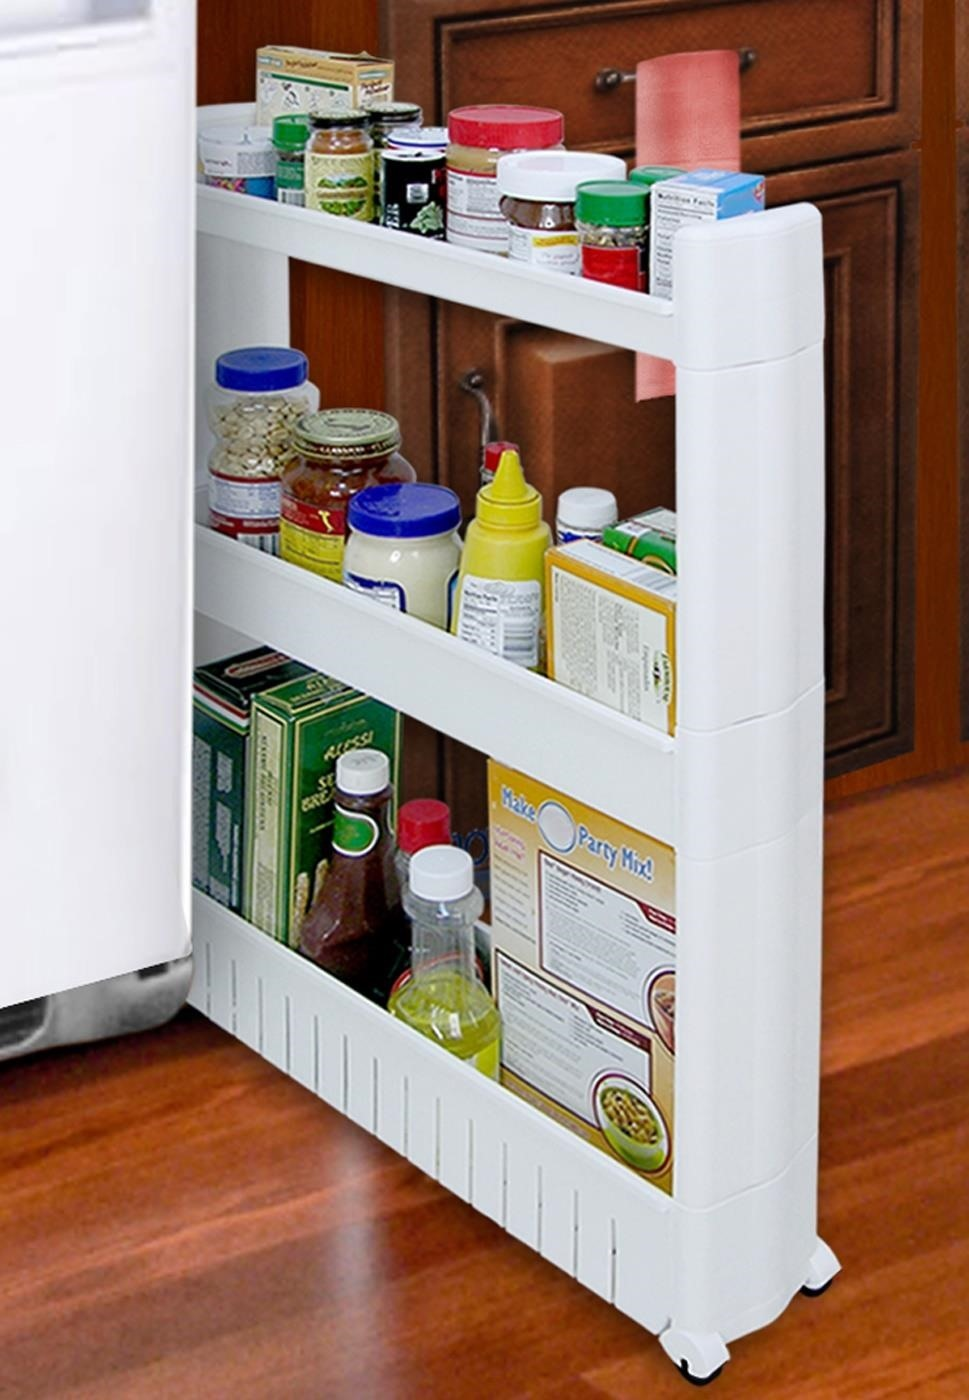 For Small Kitchen Storage 10 Smart Storage Hacks For Your Small Kitchen A Food Hacks Daily